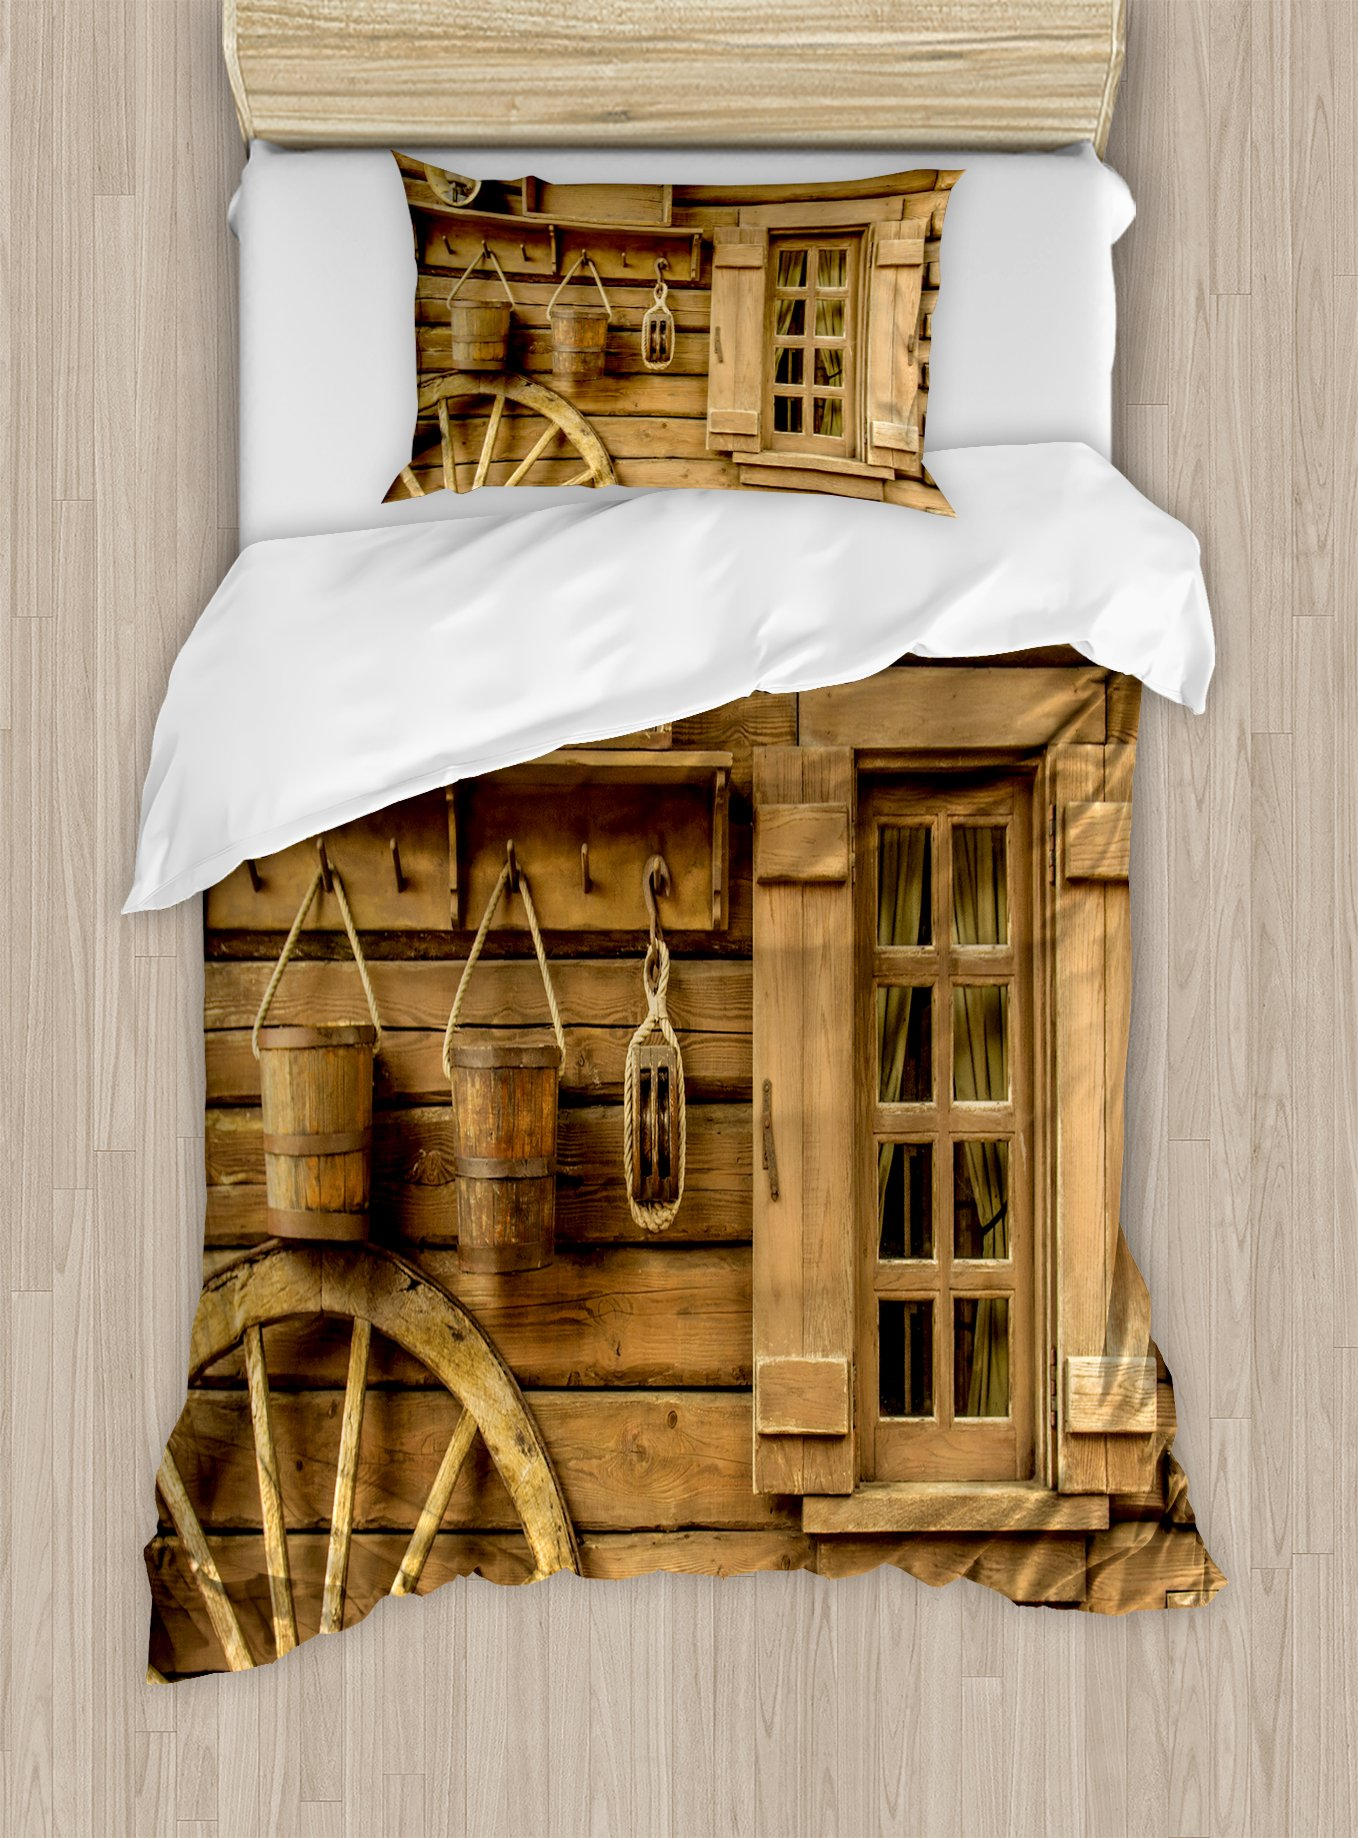 Western Decor Duvet Cover Set by Ambesonne, Wagon Wheel next to a Rustic Wooden House with Vintage Lantern Window and Retro Buckets, 2 Piece Bedding Set with 1 Pillow Sham, Twin / Twin XL Size